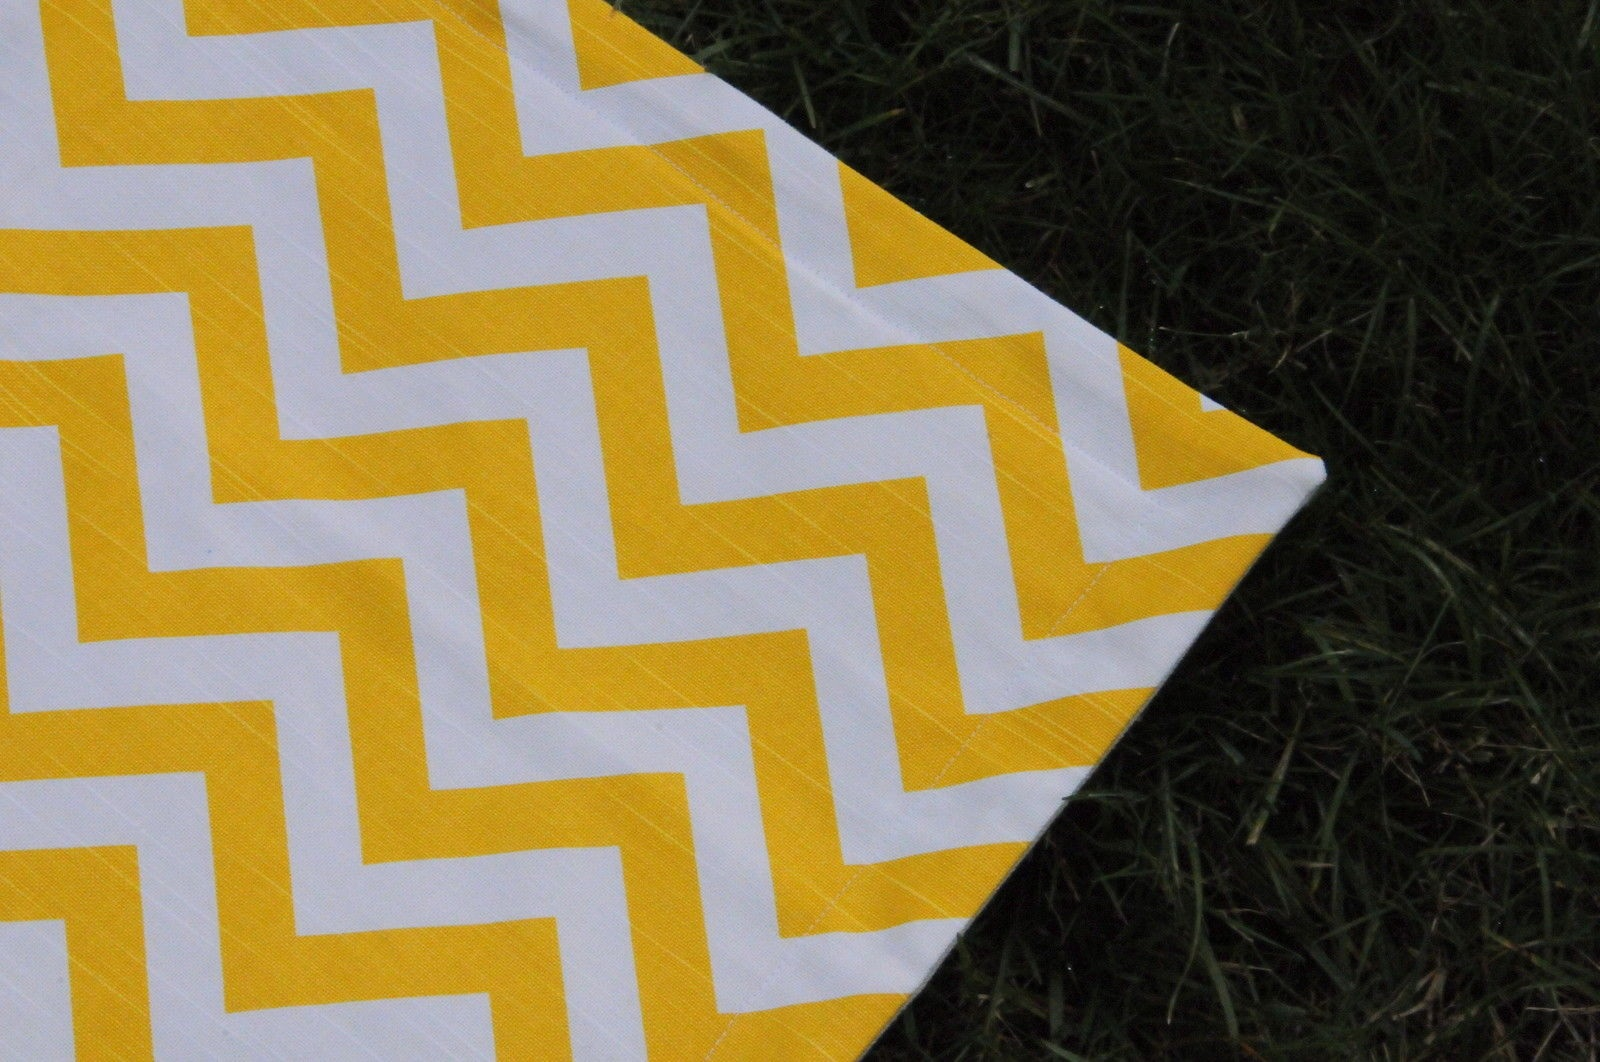 Canvas Area Rug Playmat Mess Mat 2 2 X 3 Chevron Zigzag Yellow And White Sold By Lolasita S On Storenvy